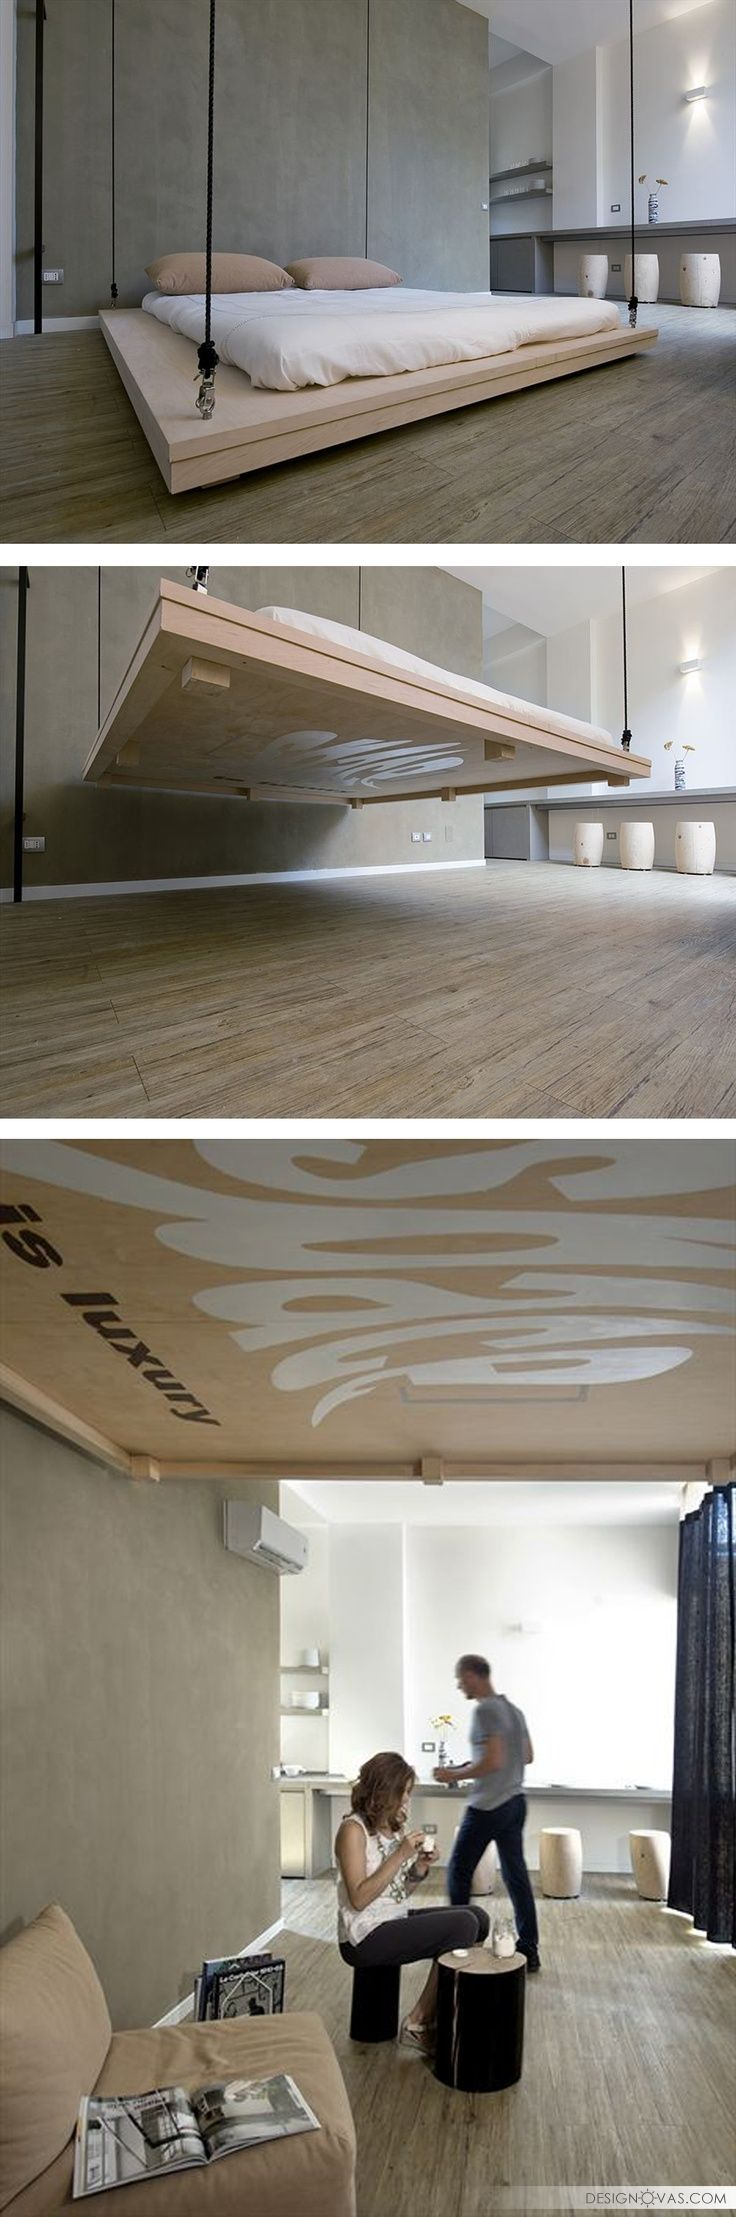 31 stylish floating bed design ideas bed awesome house rh pinterest nz